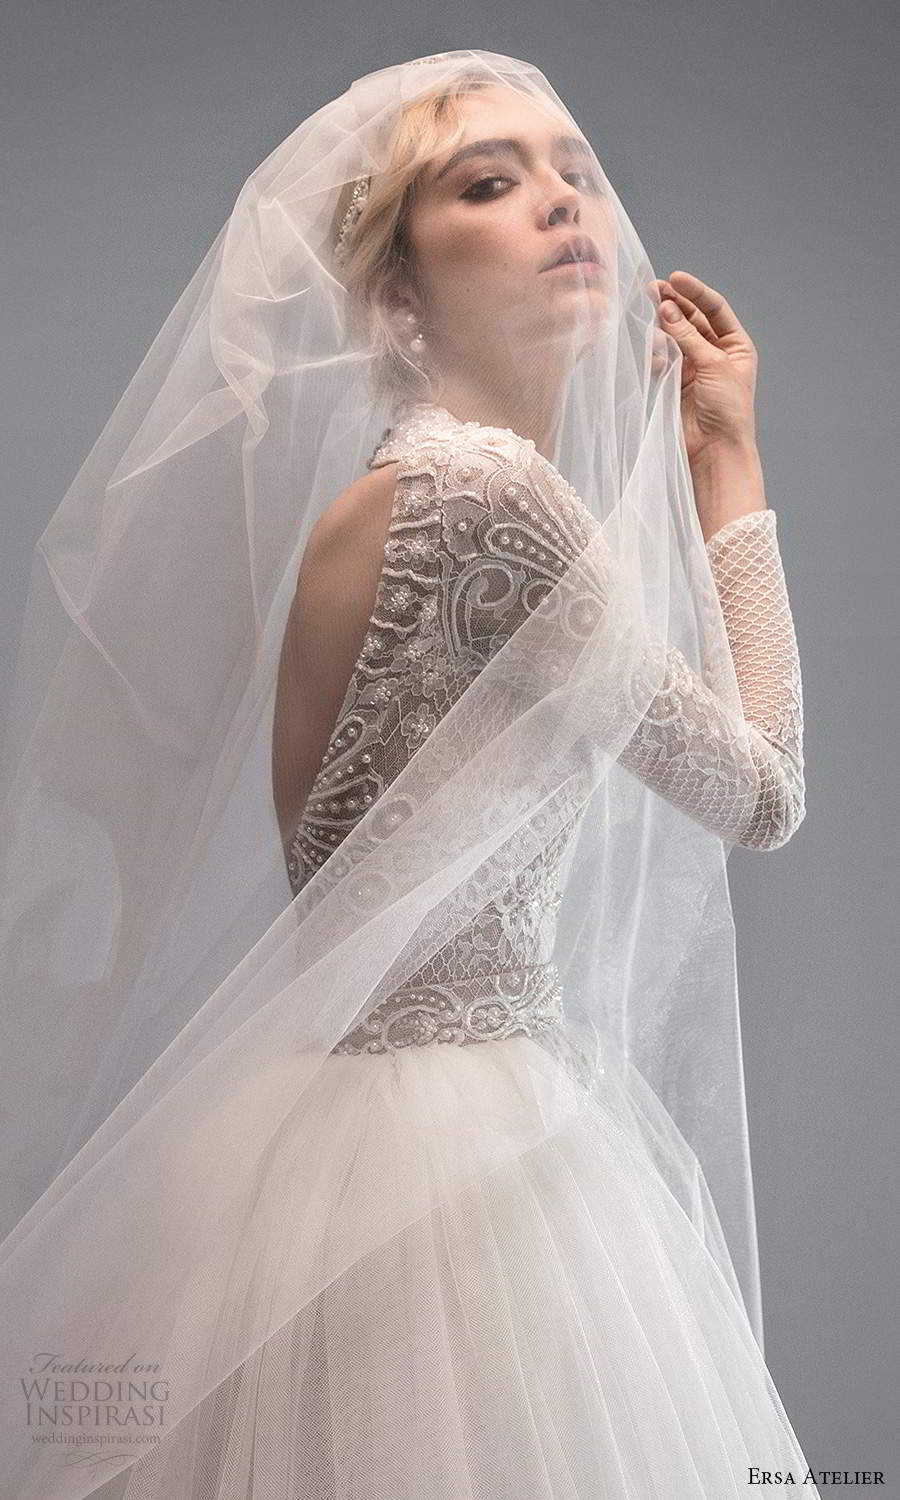 ersa atelier spring 2021 bridal long sleeves plunging v neckline embellished a line wedding dress ball gown overskirt chapel train cutout back (4) zsv